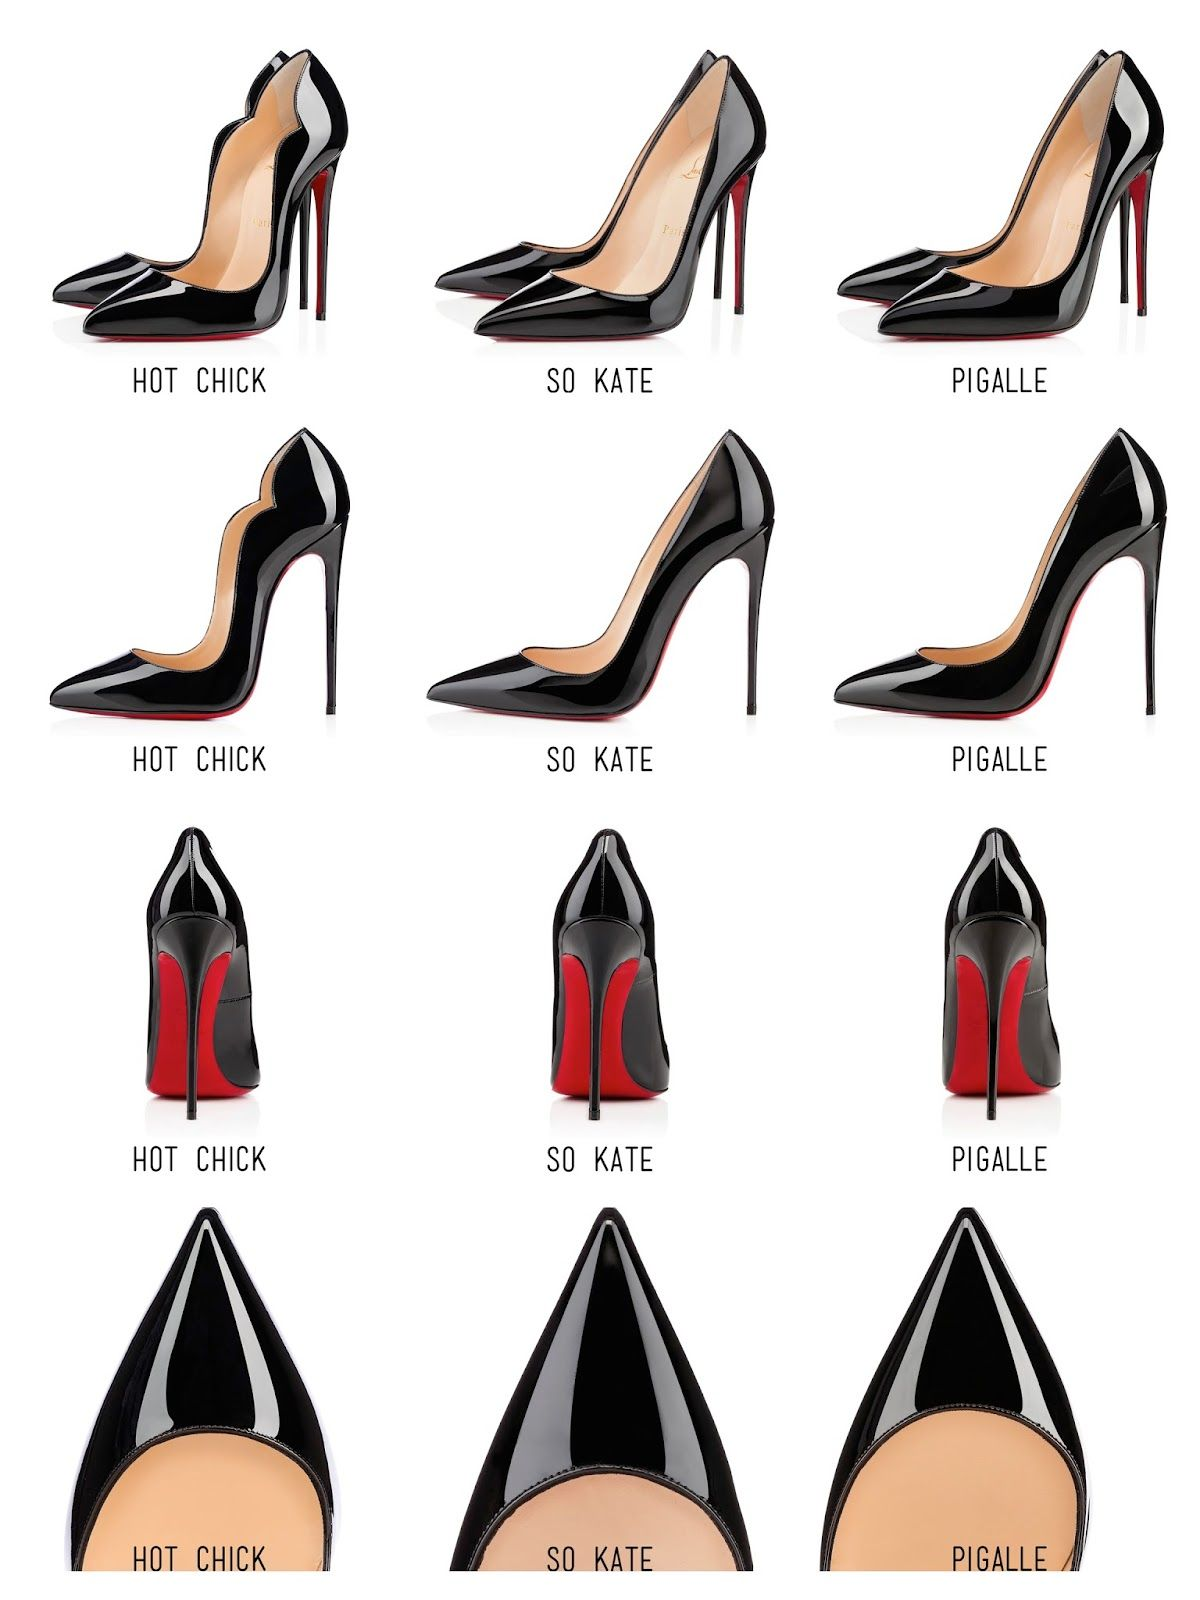 80b49e5dc920 Christian Louboutin Hot Chick vs. So Kate vs. Pigalle